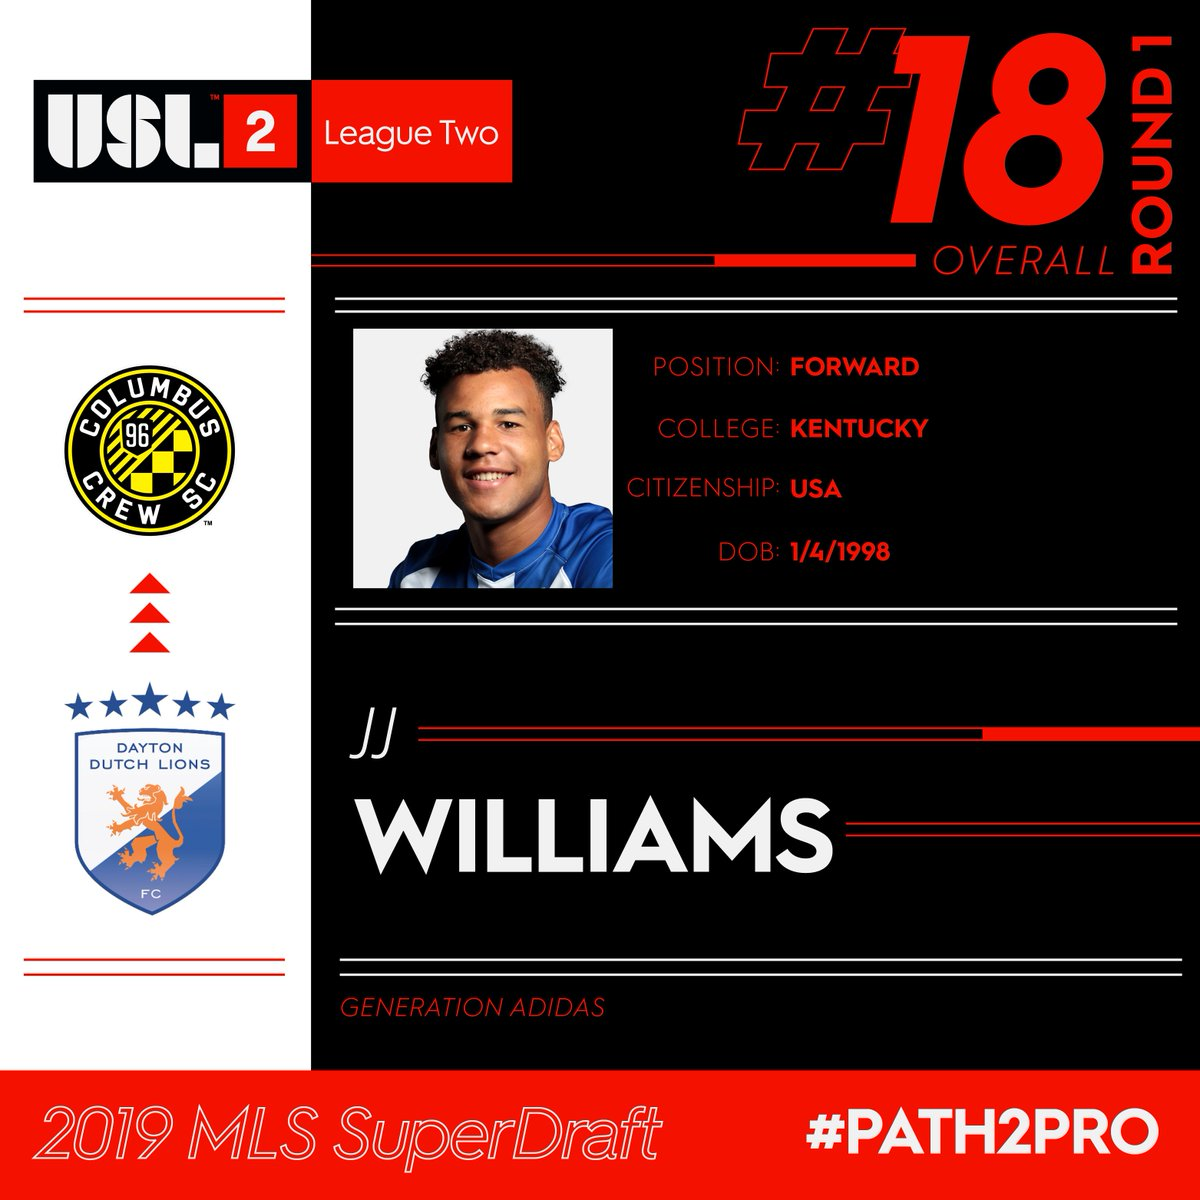 USL League Two's photo on JJ Williams